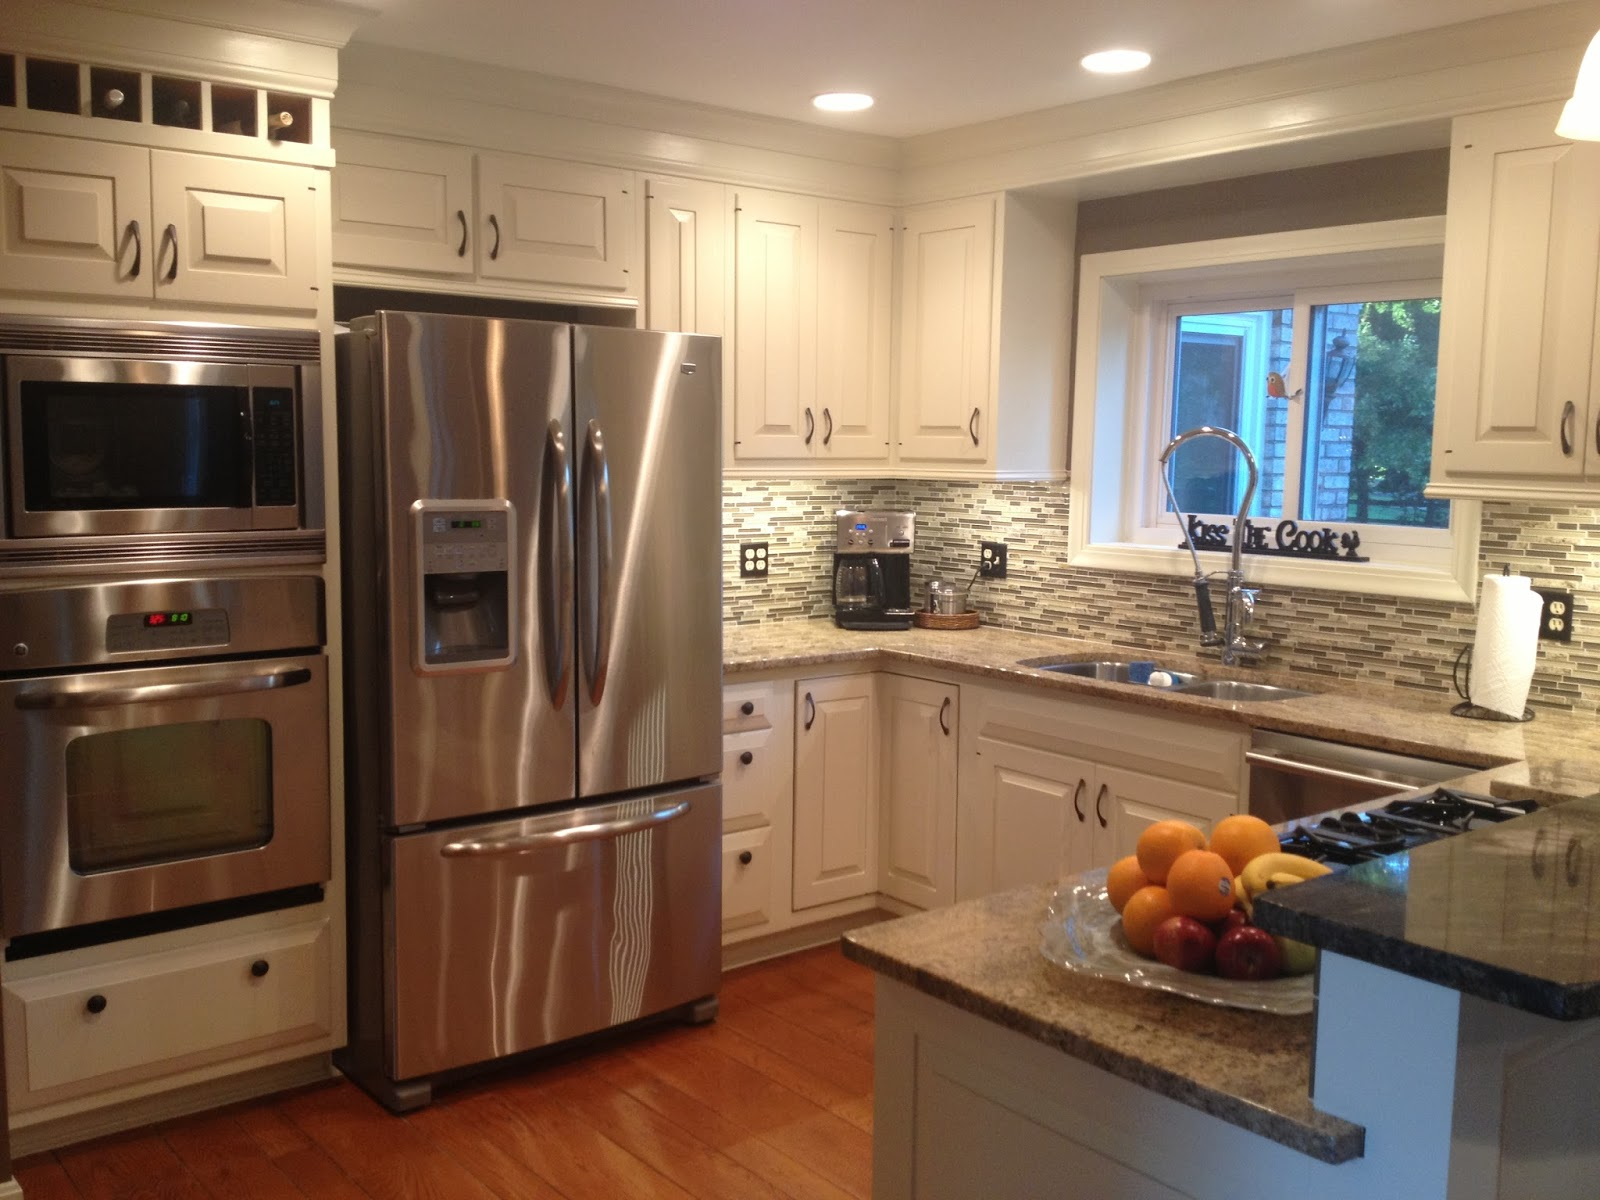 Four seasons style the new kitchen remodel on a budget for Kitchen cabinets on a budget